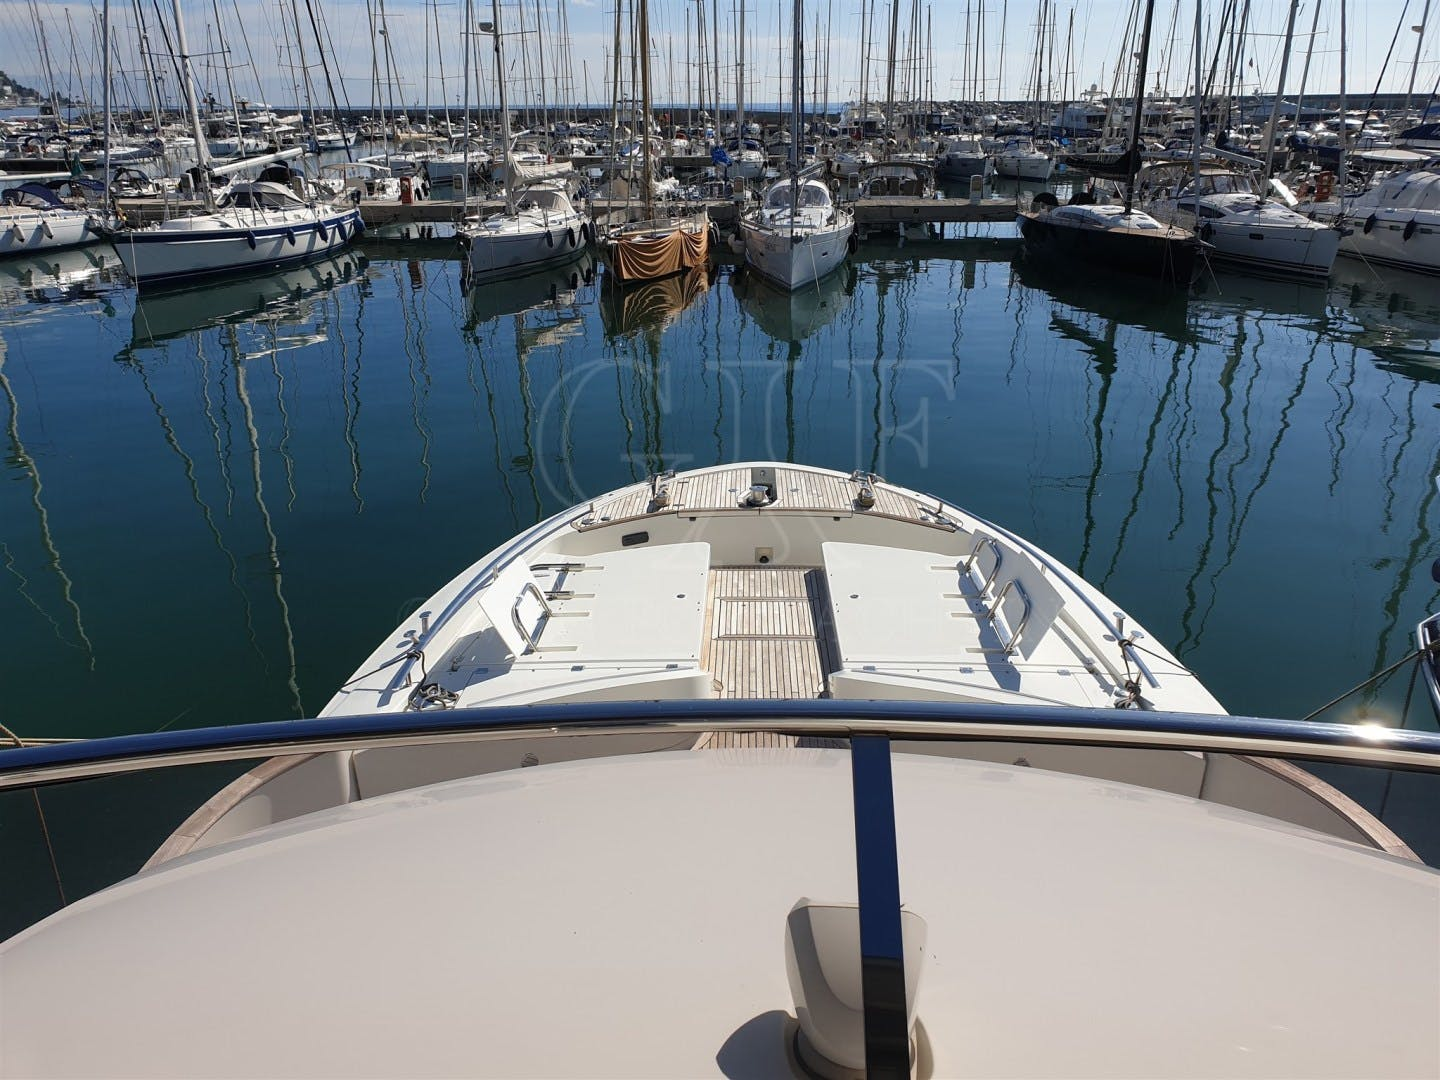 2016 Monte Carlo 65' MCY 65 EXCALIBUR | Picture 4 of 24